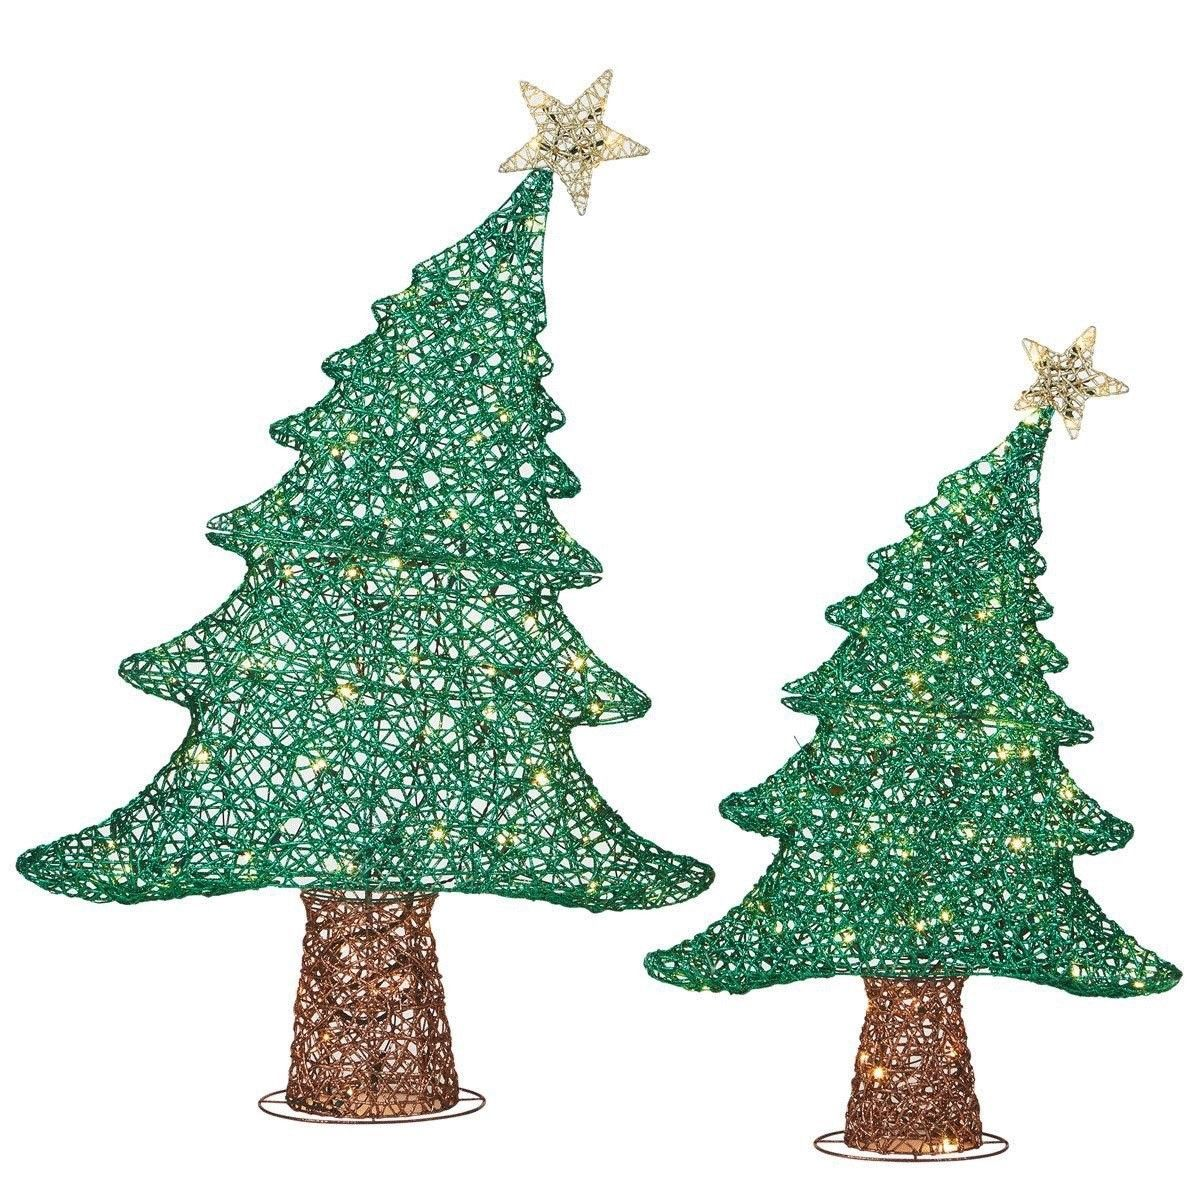 Whimsical Christmas Trees With 120 Colour Changing LED Lights Indoor ...